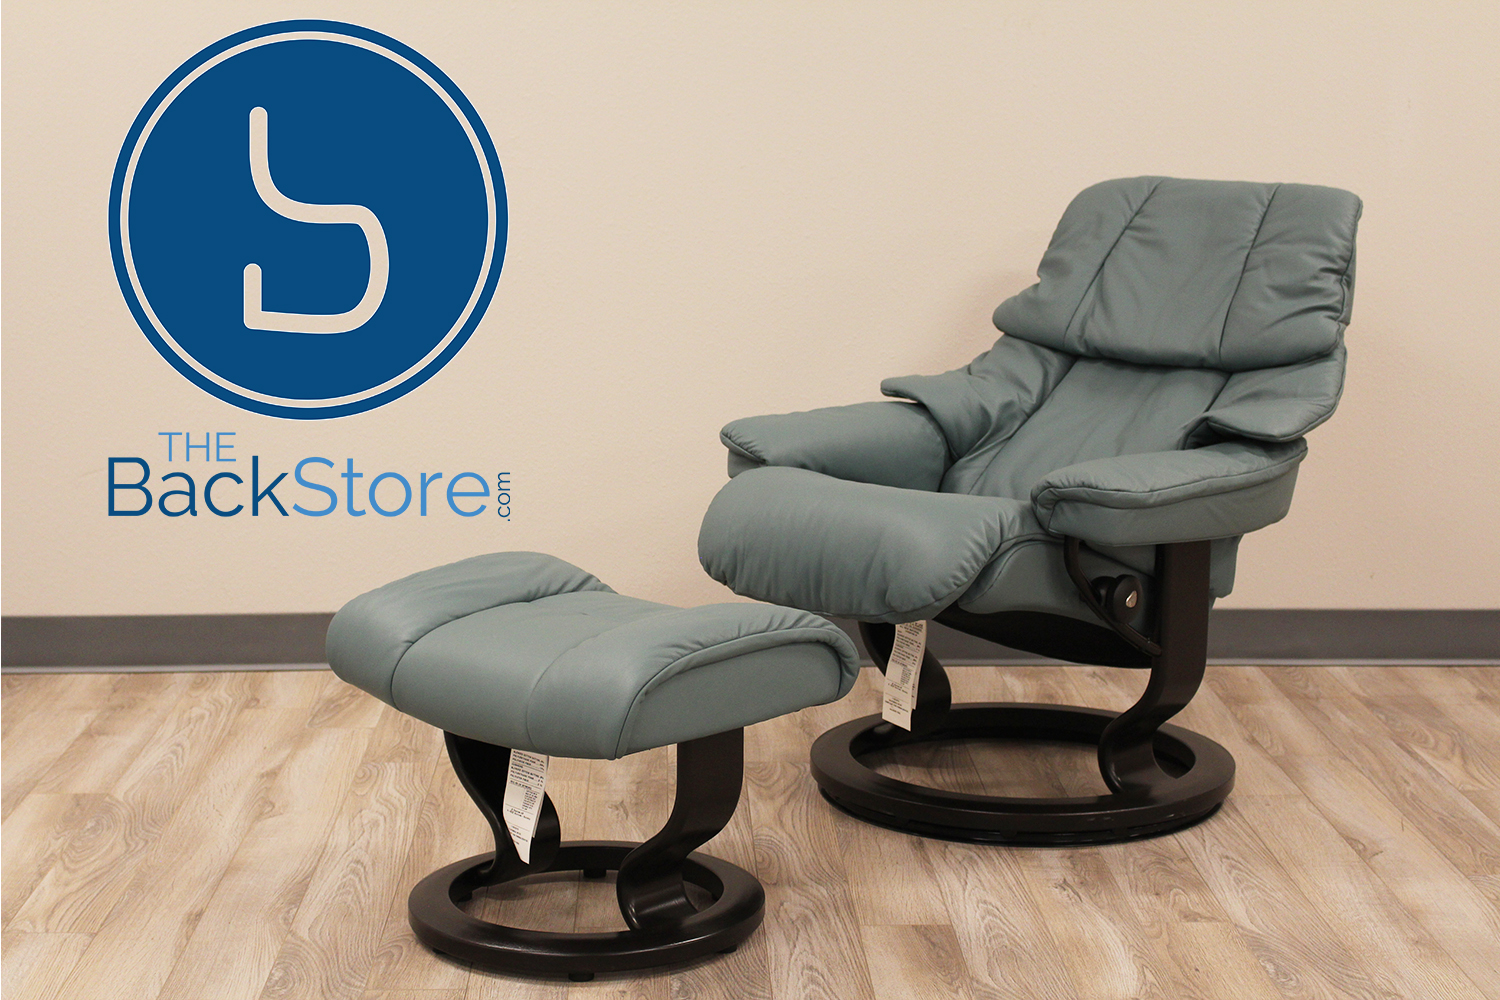 Prime Stressless Tampa Small Reno Paloma Aquagreen Leather Recliner Chair And Ottoman By Ekornes Bralicious Painted Fabric Chair Ideas Braliciousco